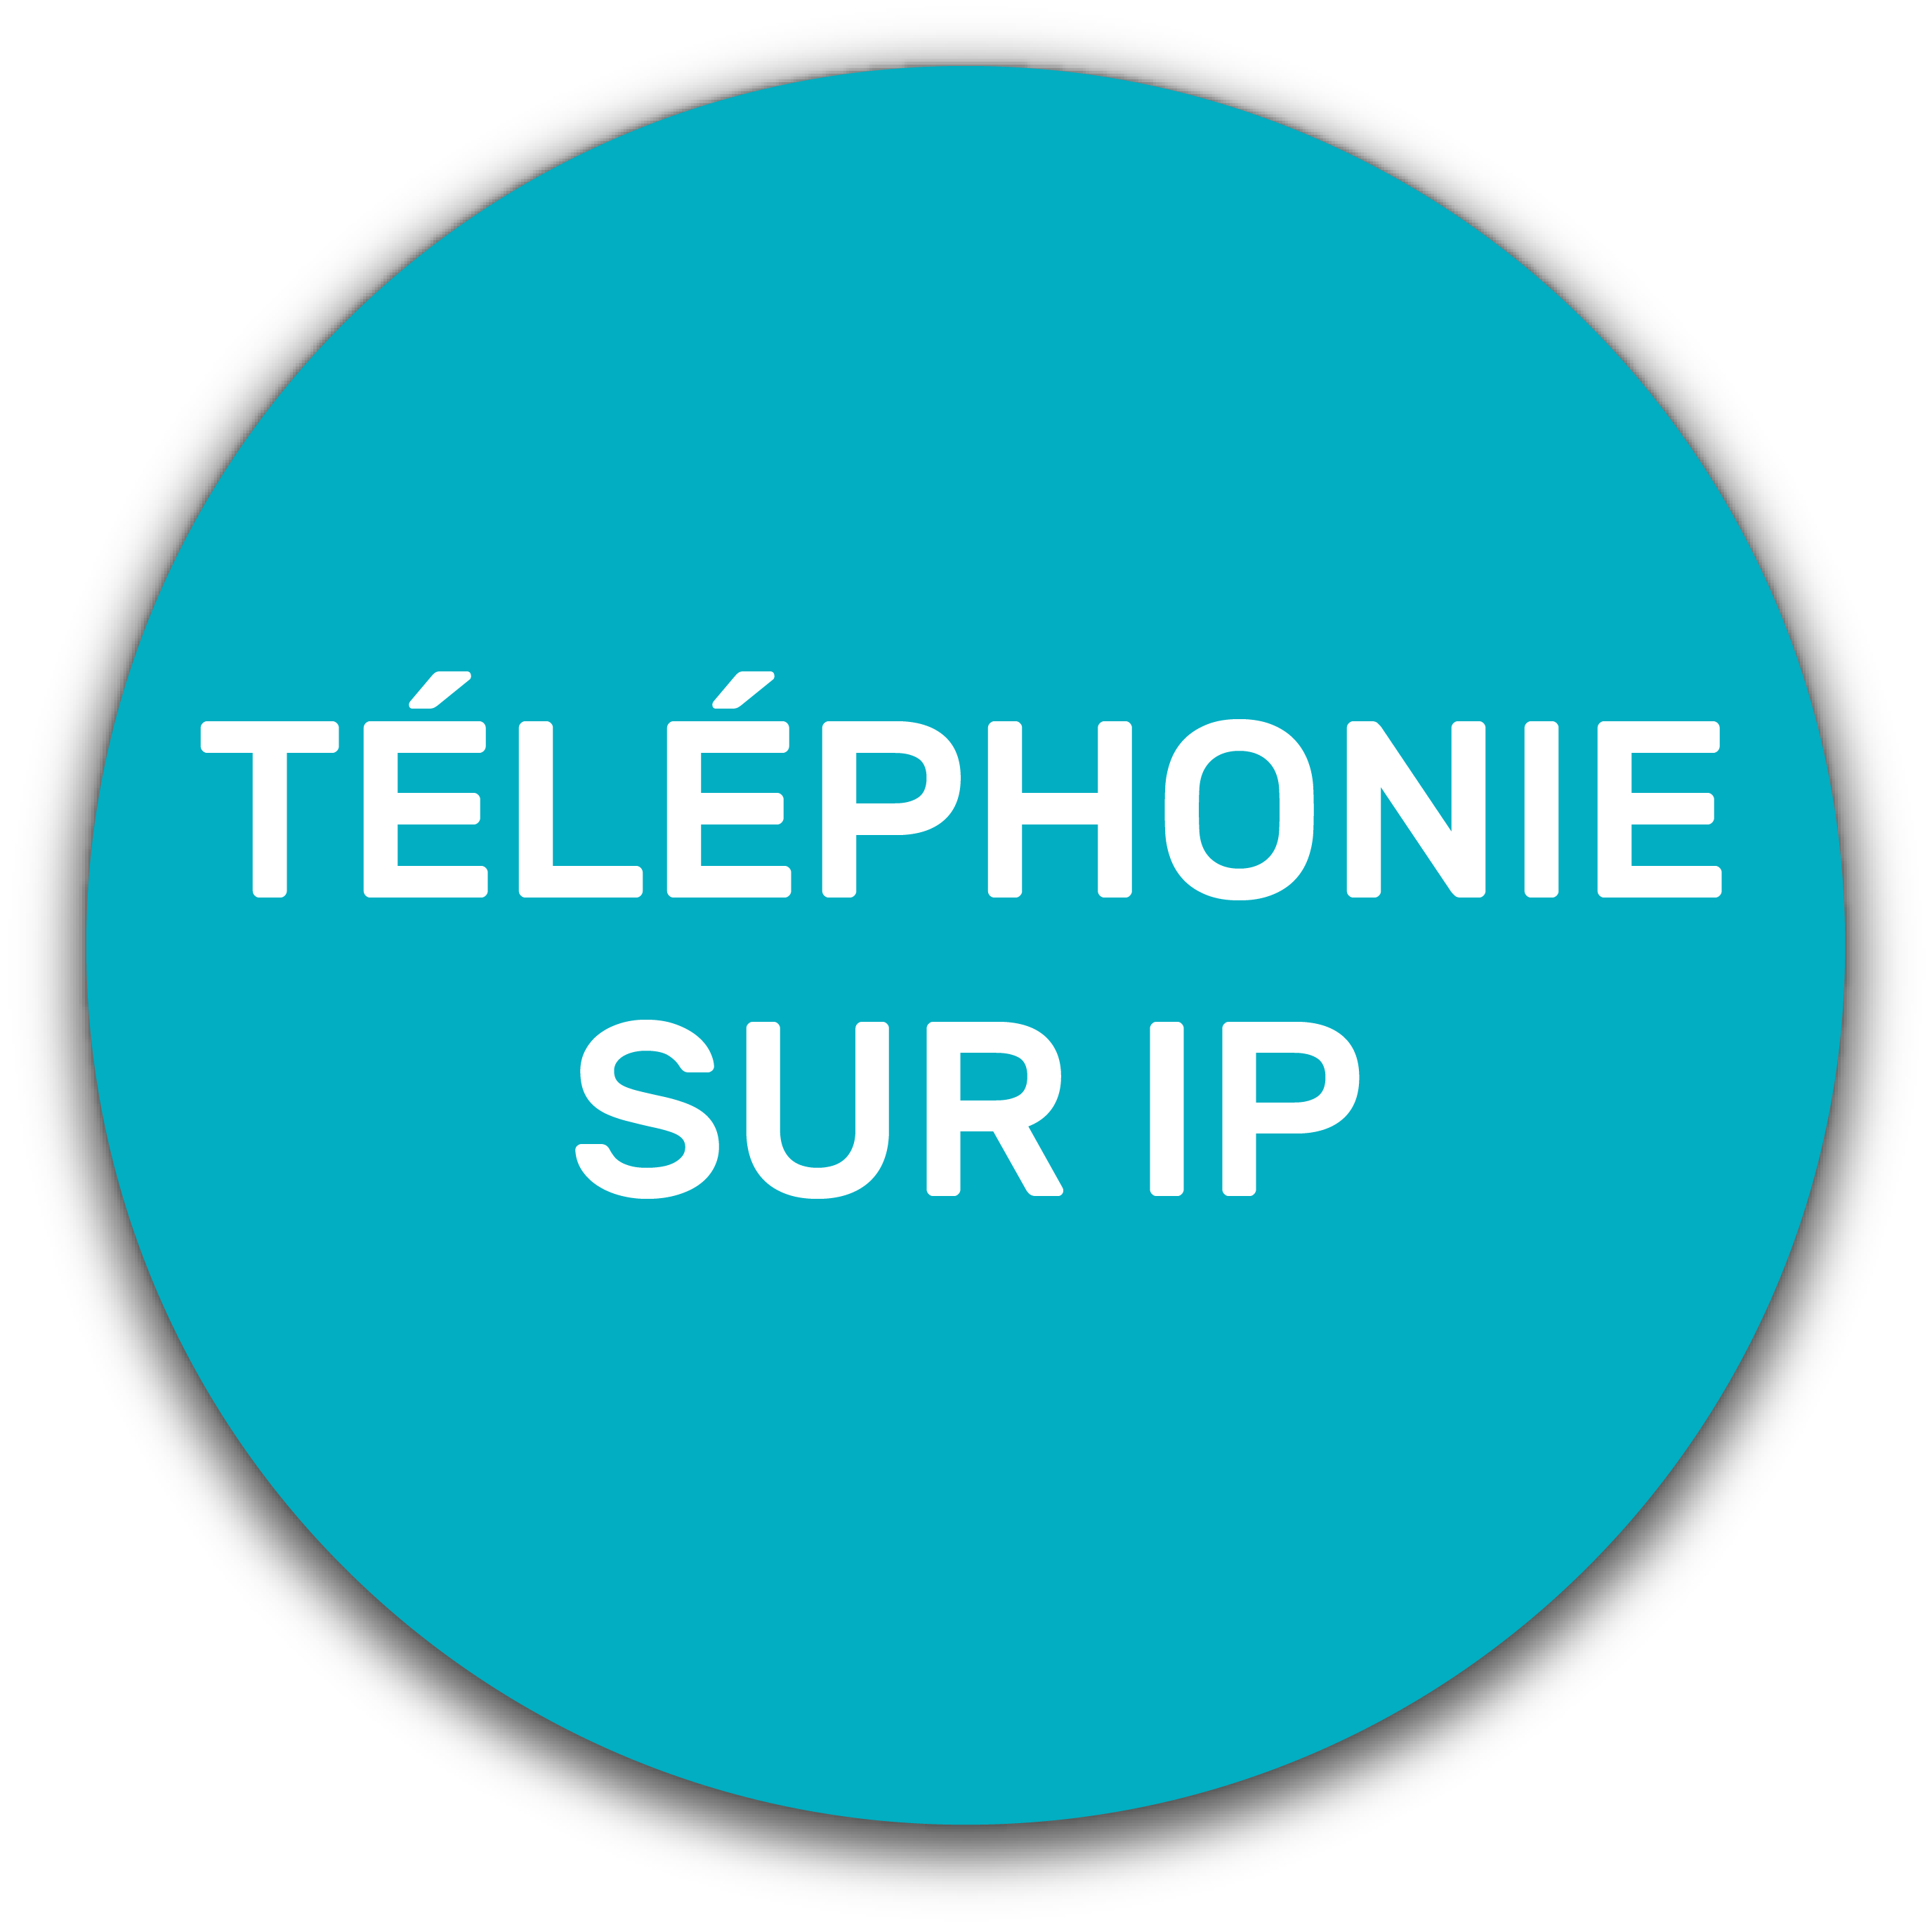 OFFRE TELEPHONIE SUR IP BY EEZY